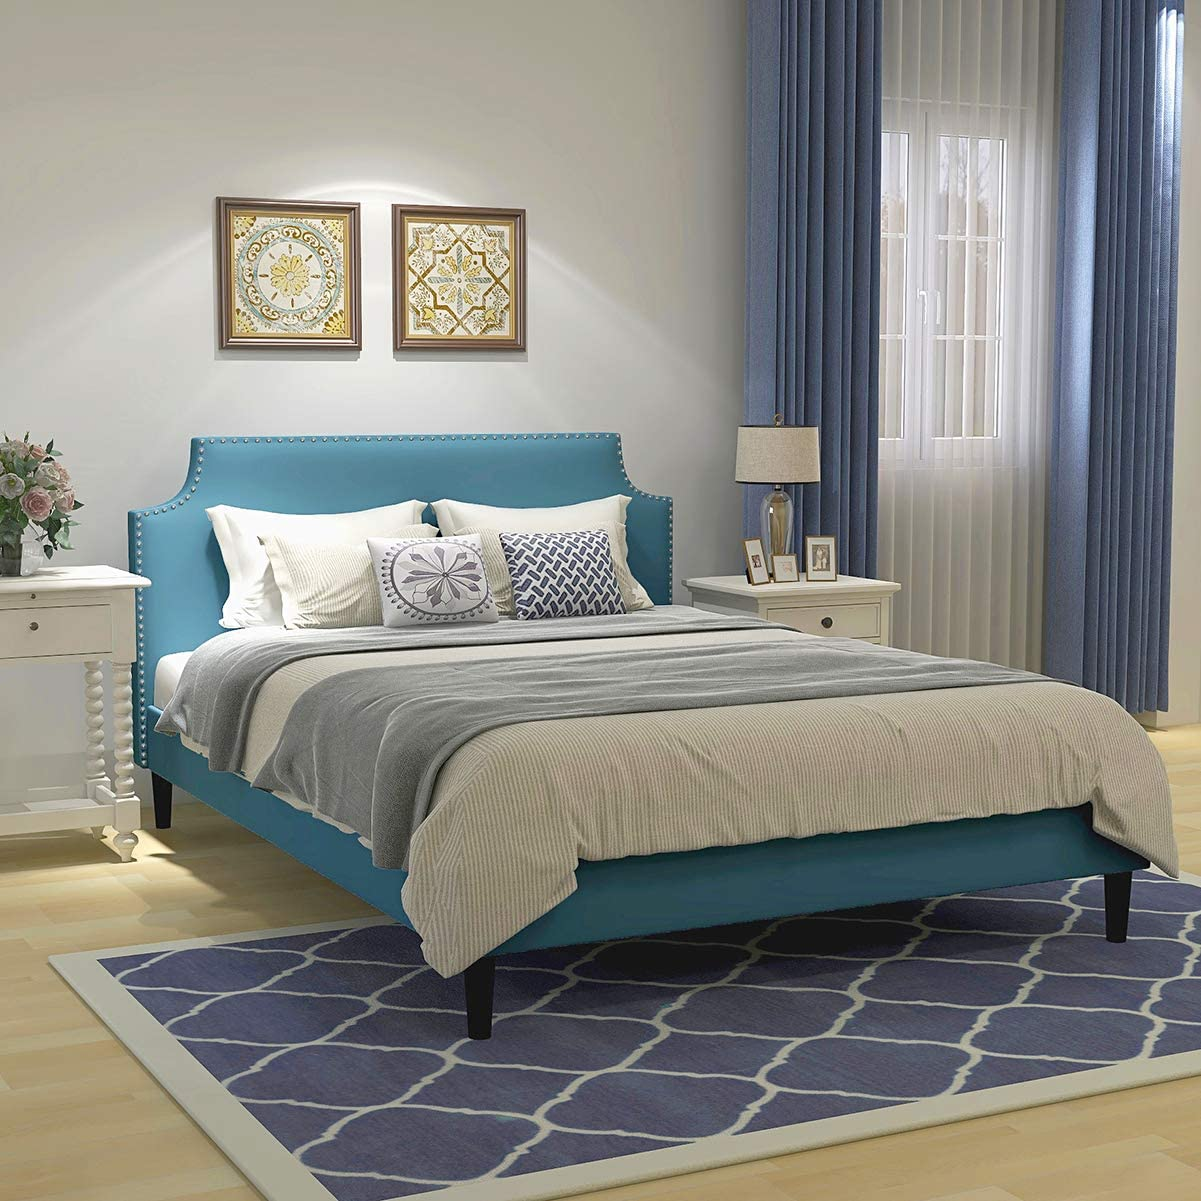 Upholstered High quality Button Tufted Platform Bed with Headboard Woo Same day shipping Strong